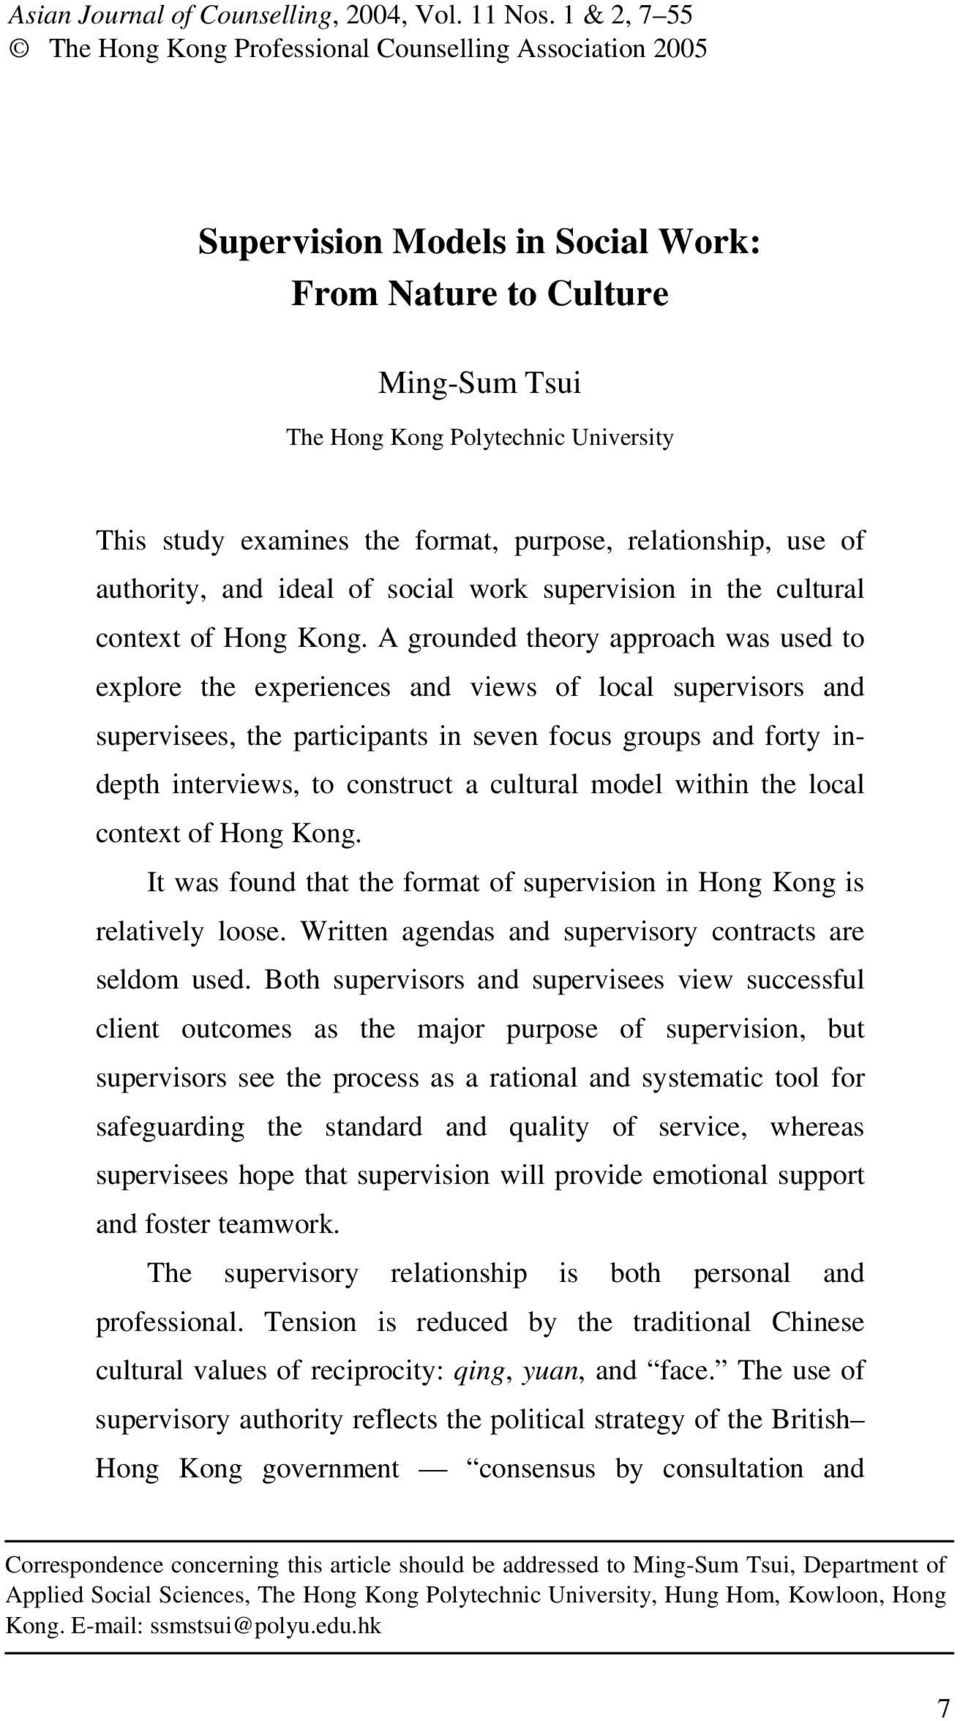 the format, purpose, relationship, use of authority, and ideal of social work supervision in the cultural context of Hong Kong.